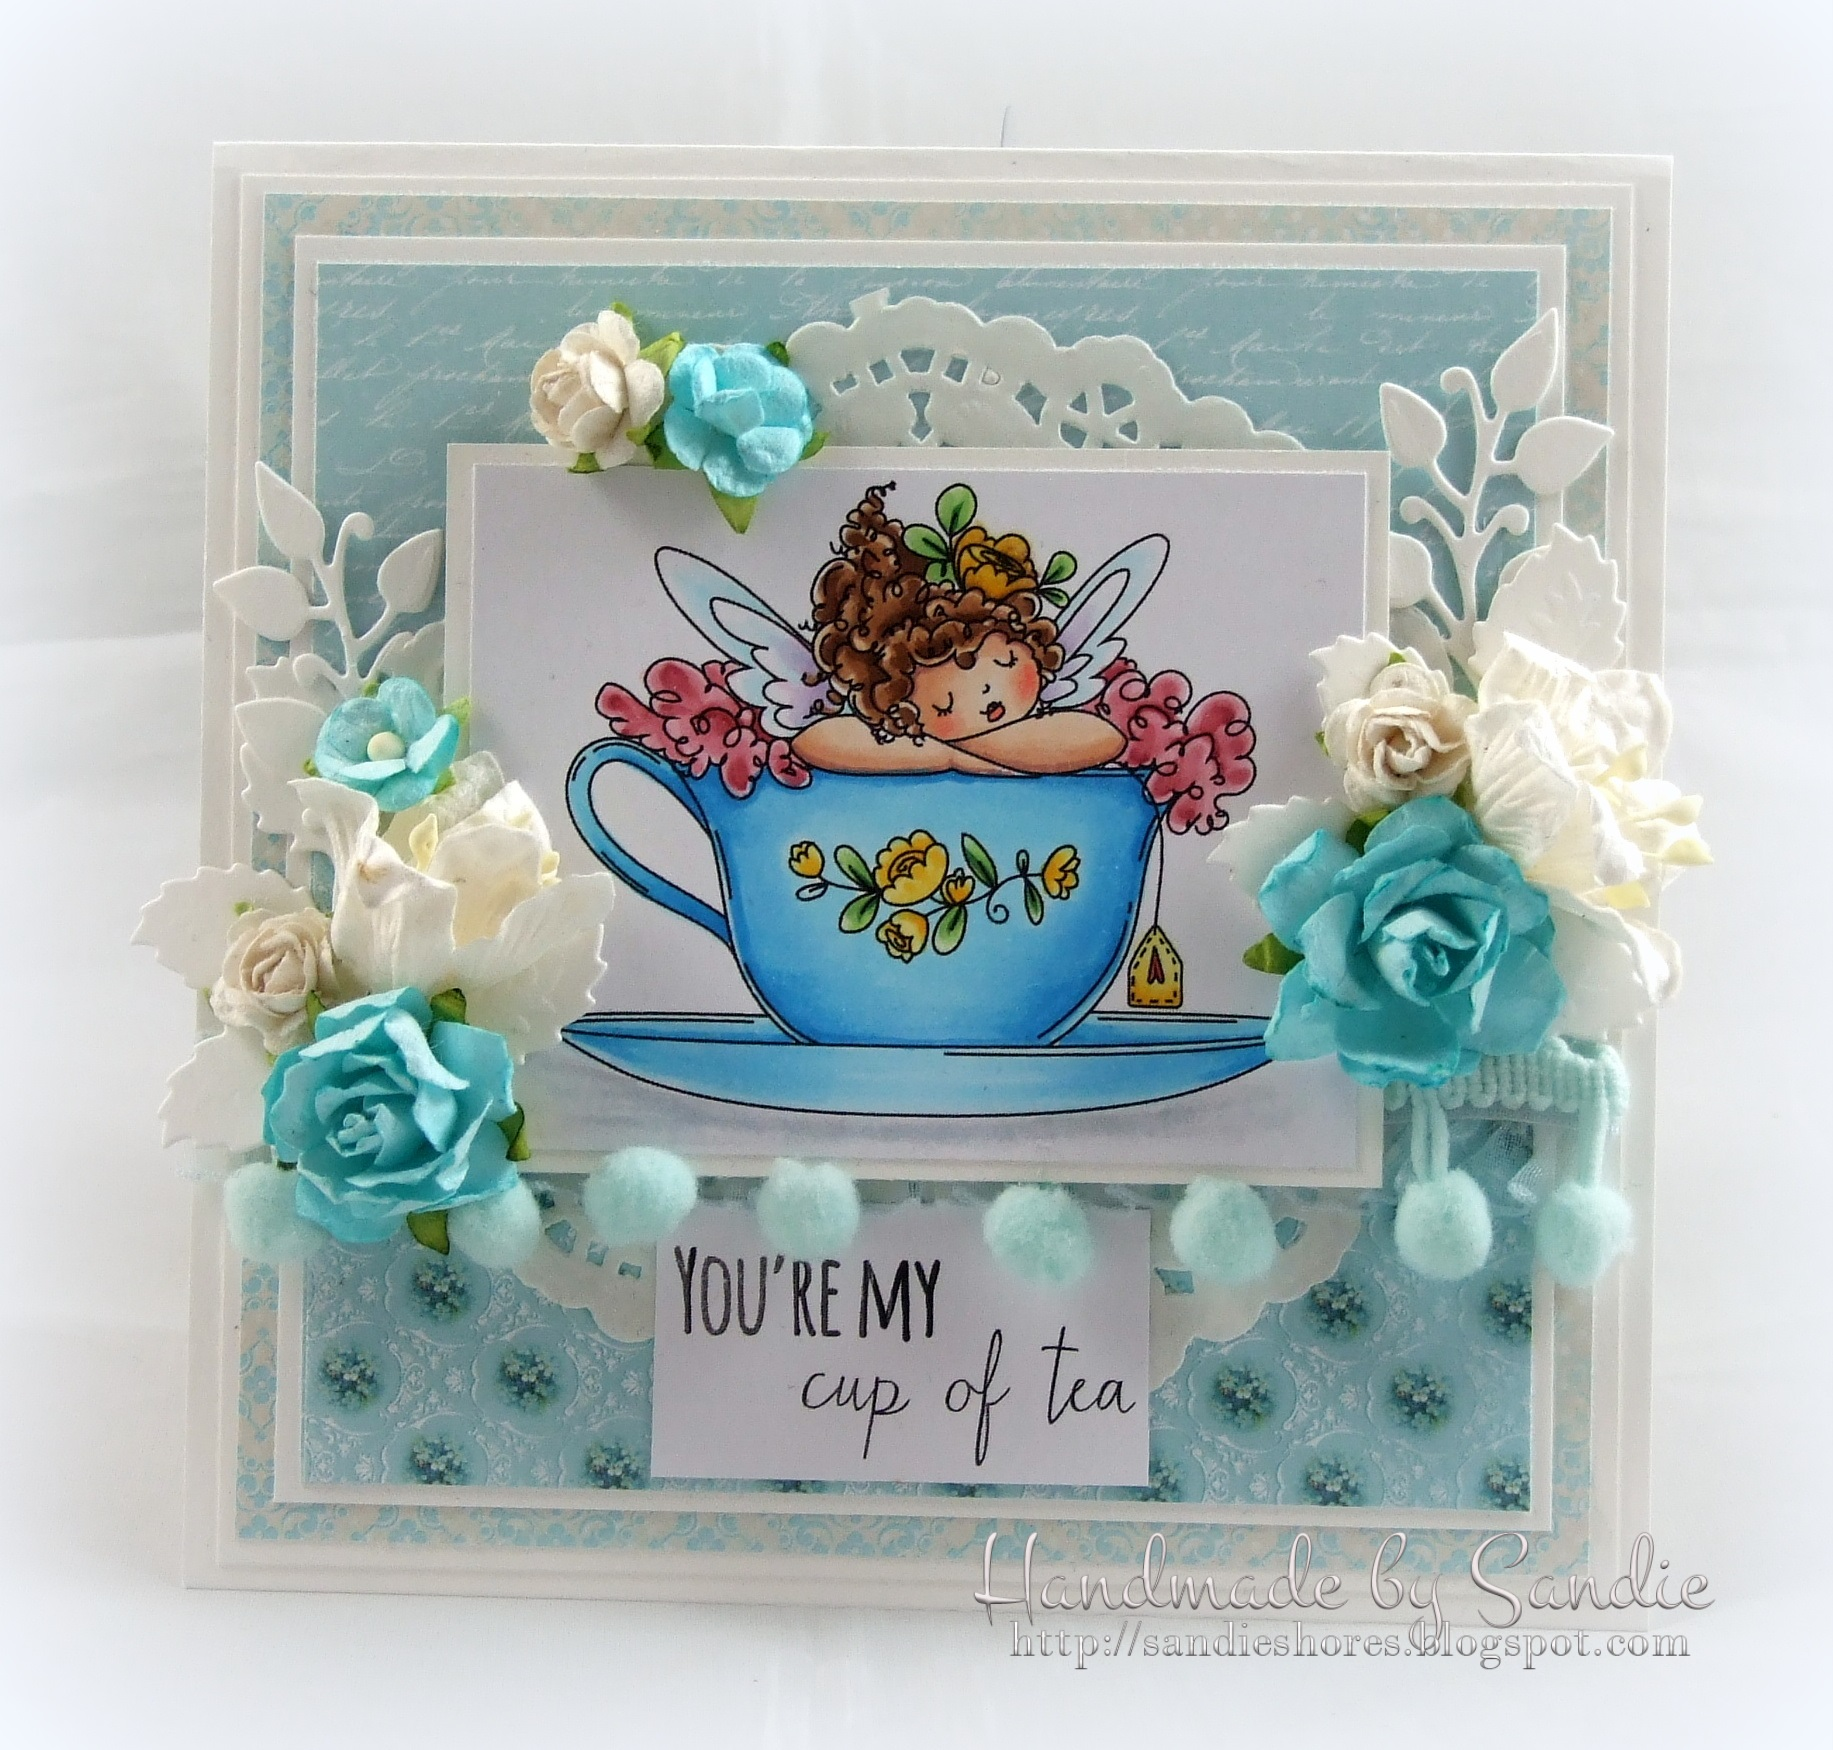 Stamping Bella JANUARY 2017 rubber stamp release-Edna's CUP OF TEA card by Sandie Dunne